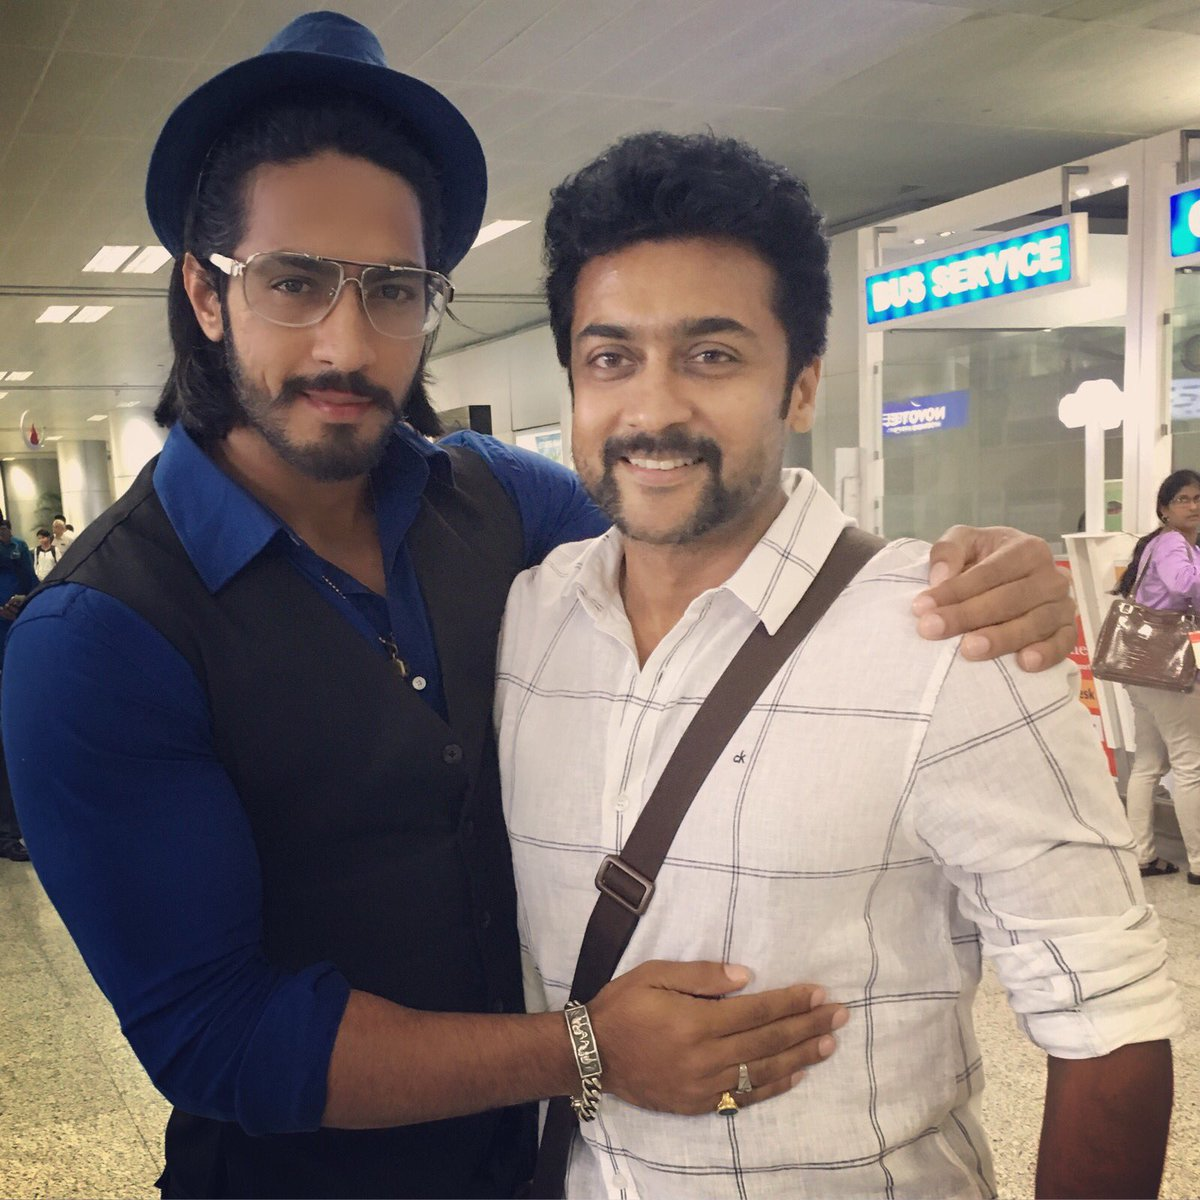 Wishing my Rocking Hero Durai Singam @Suriya_offl a very Happy Birthday! Doing a film with you is and will remain one of my most memorable achievements of life! 💪   Love,   Vitthal Prasad #S3   #HappyBirthdaySURIYA